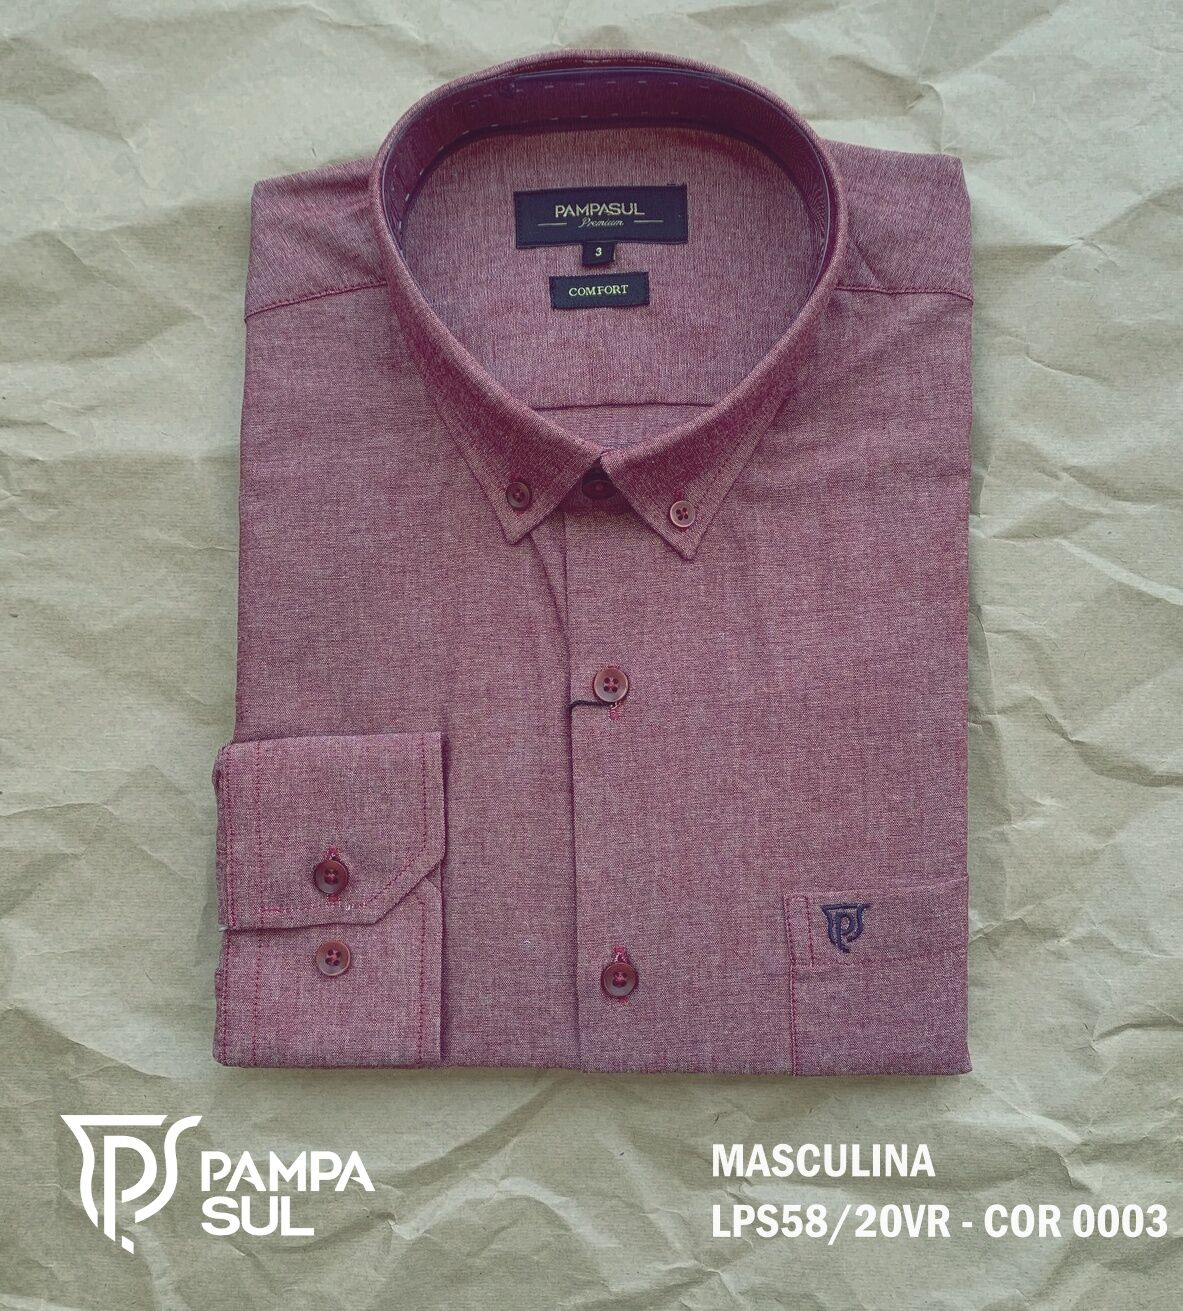 Camisa Pampa Sul Masculina Slim Confort LPS 58/20